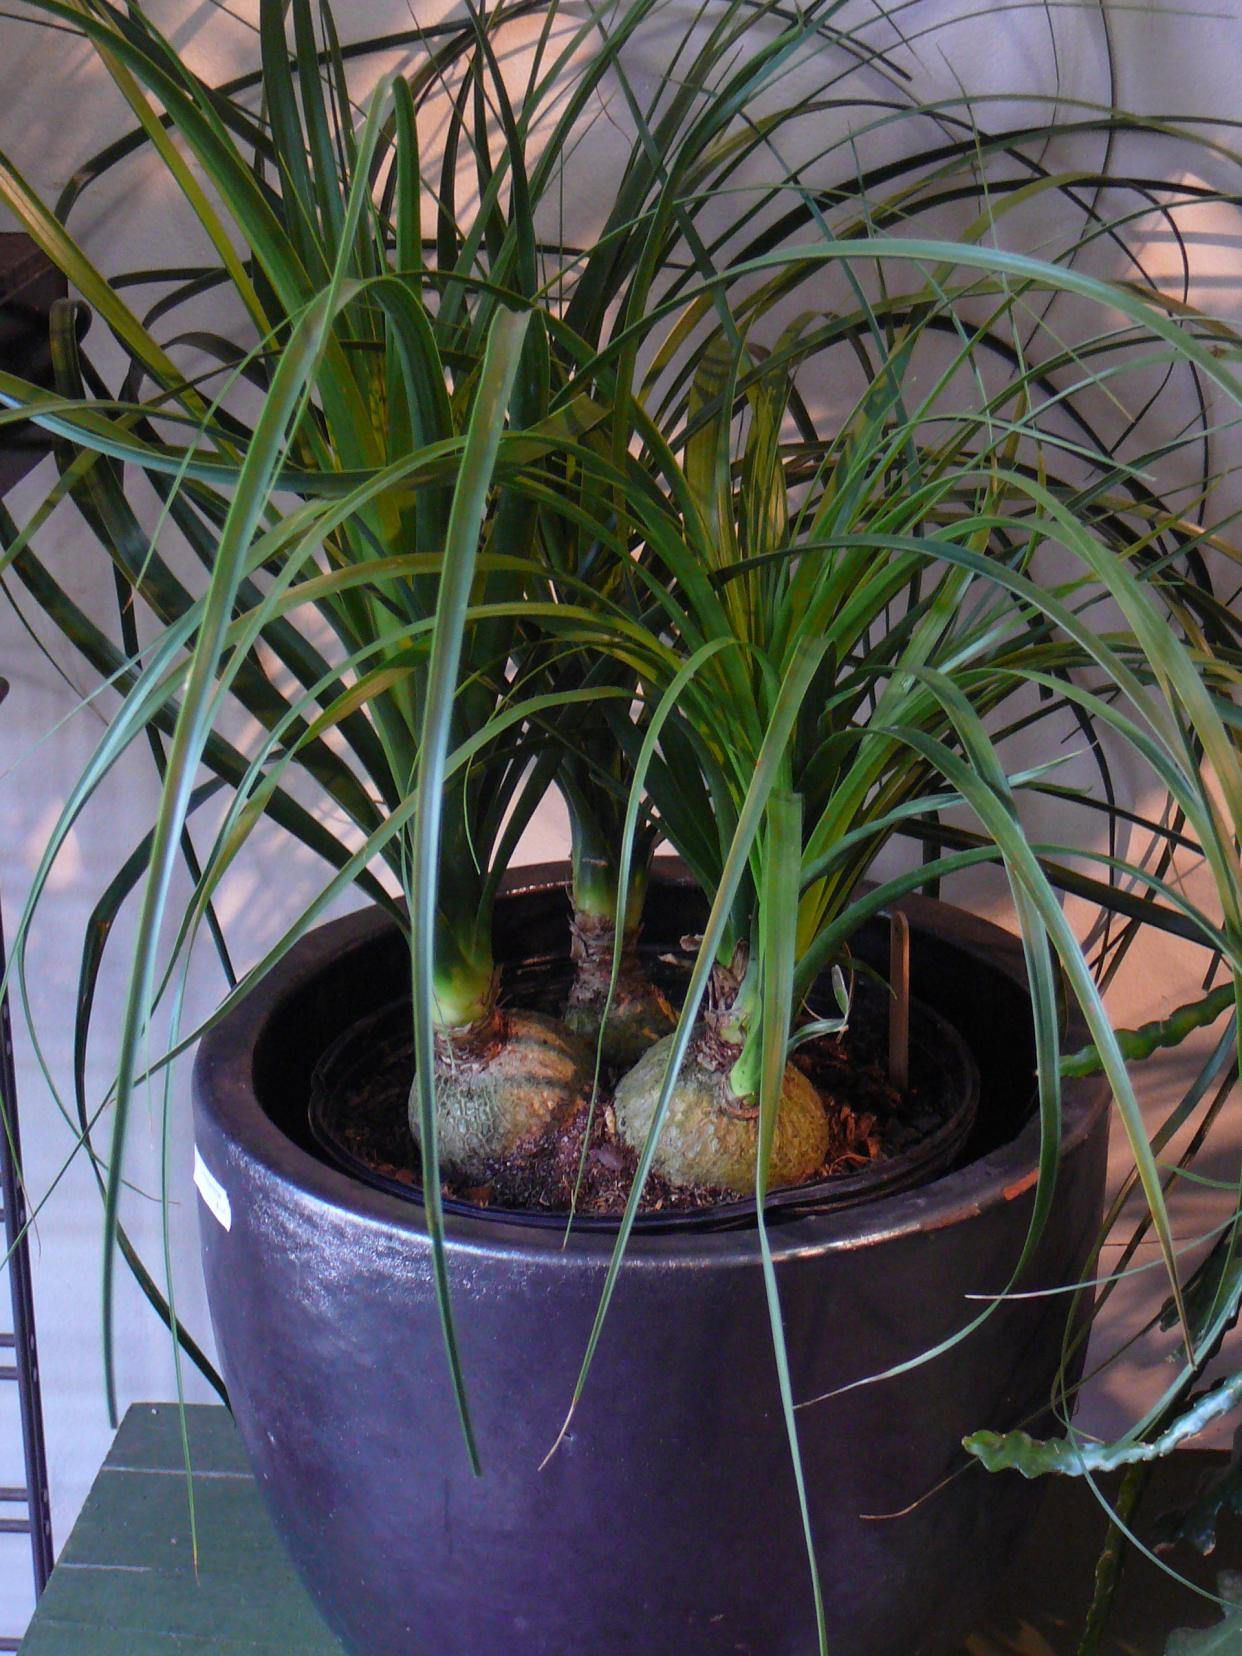 Caring For Ponytail Palm Outdoors Requires A Knowledge Of Plant Care These Lovely Little Trees Thrive In Full Sun With Generous But